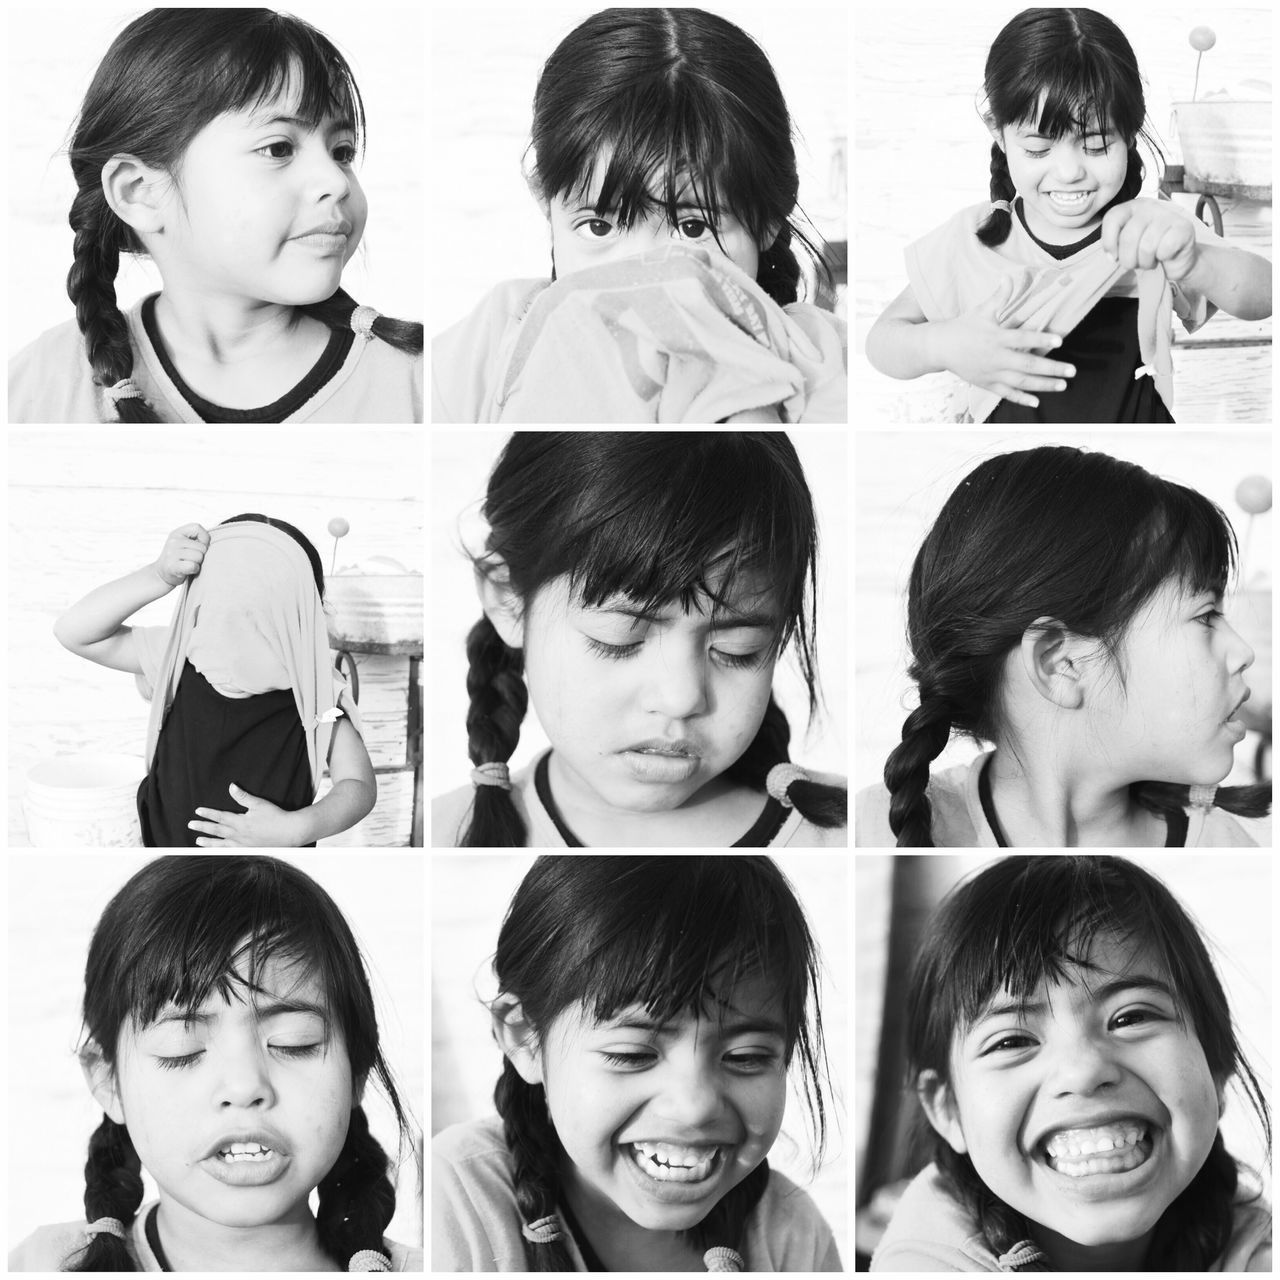 childhood, multiple image, headshot, happiness, smiling, communication, girls, child, making a face, elementary age, boys, children only, cheerful, portrait, education, looking at camera, eyeglasses, real people, indoors, hands covering ears, friendship, people, close-up, day, adult